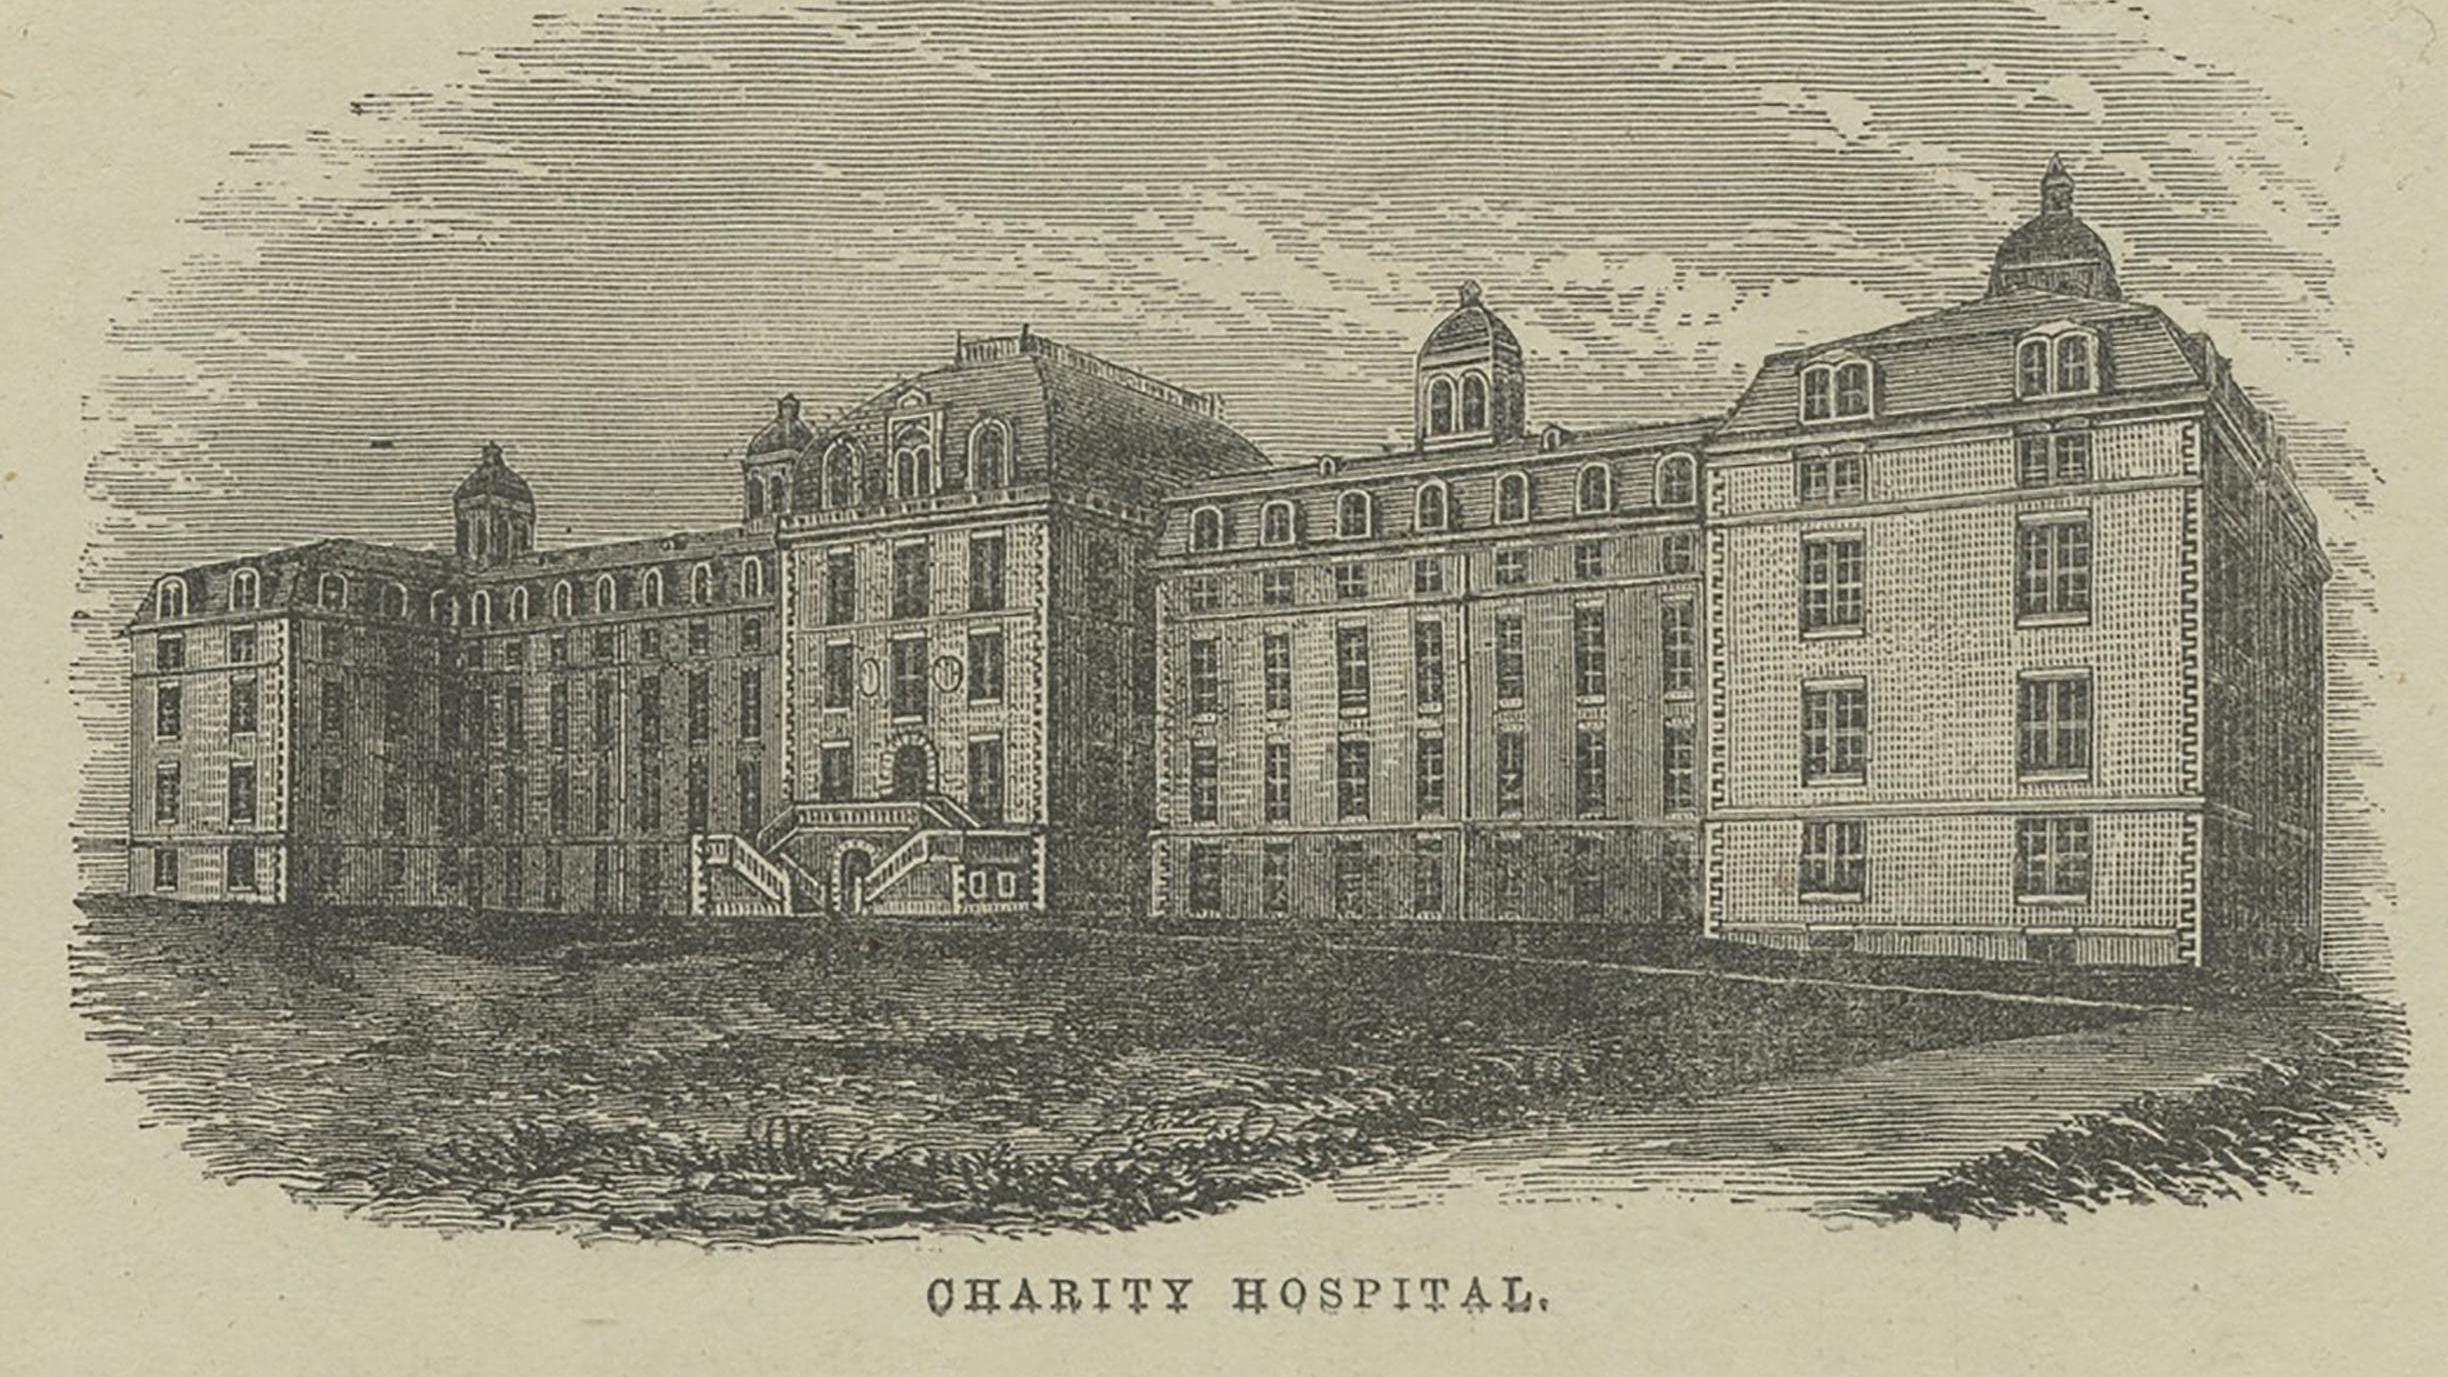 exterior of the hospital. NYPL image